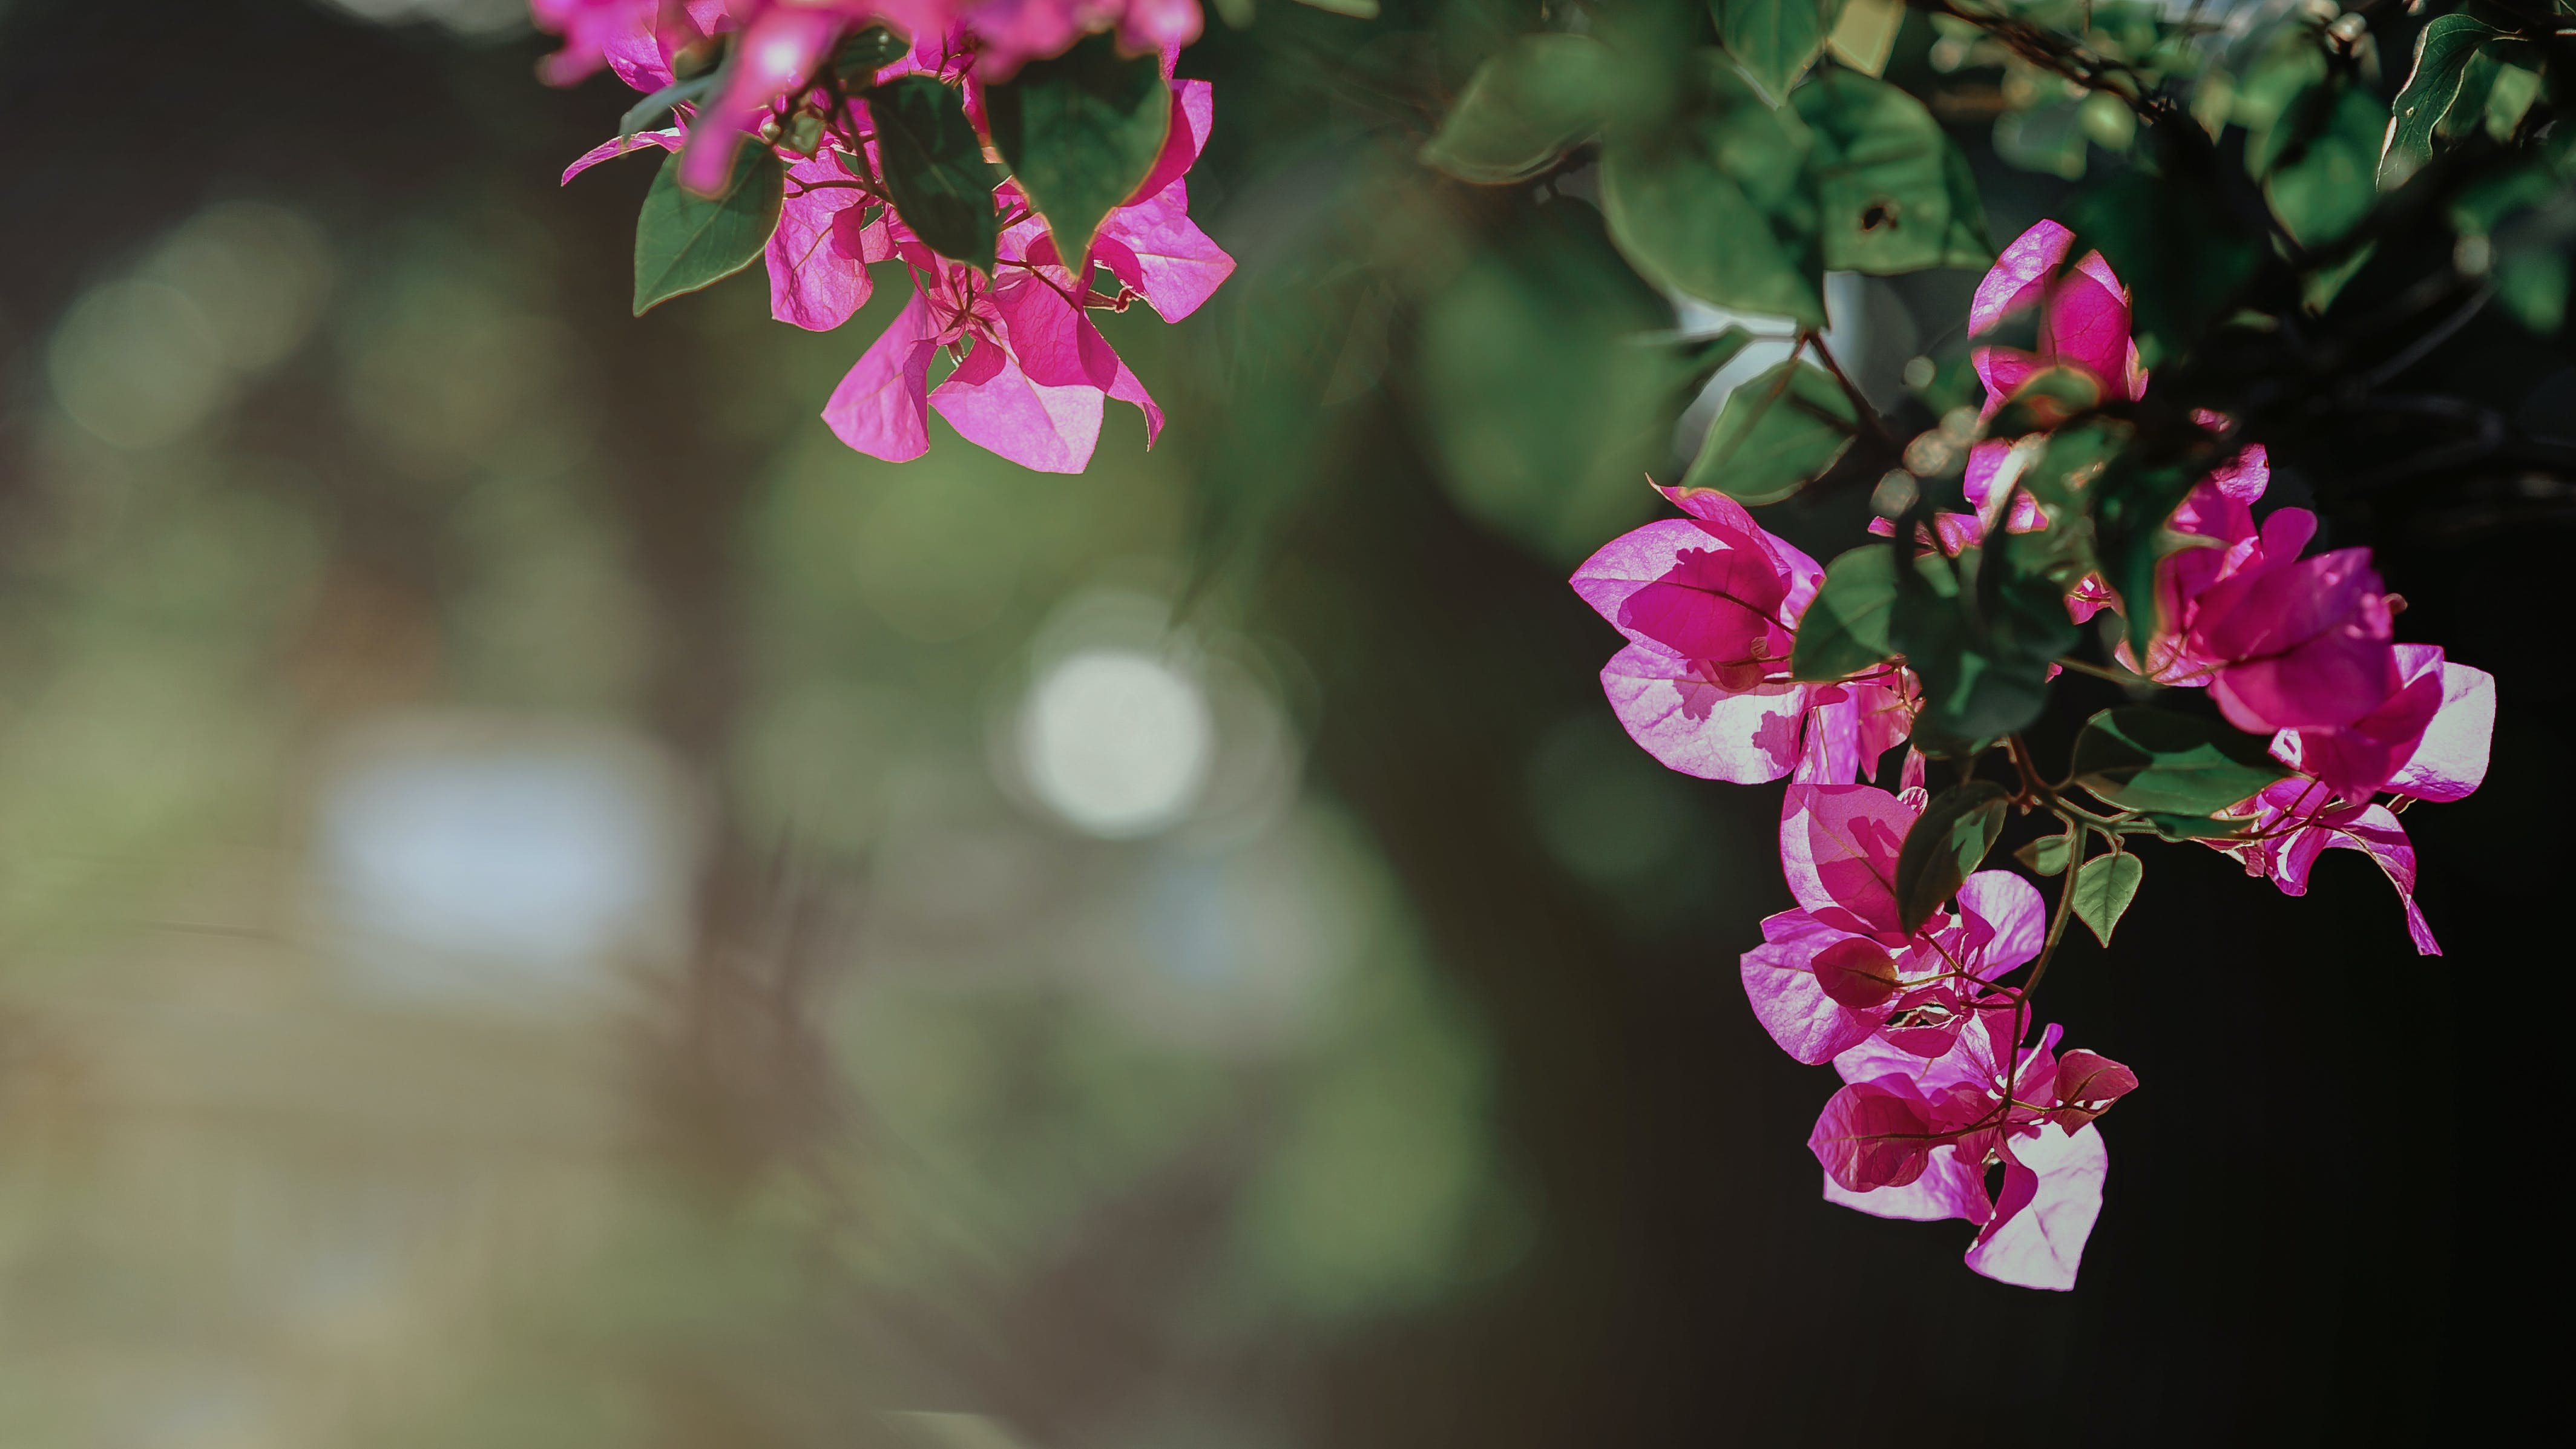 Selective Focus Photography of Pink Bougainvillea Flowers